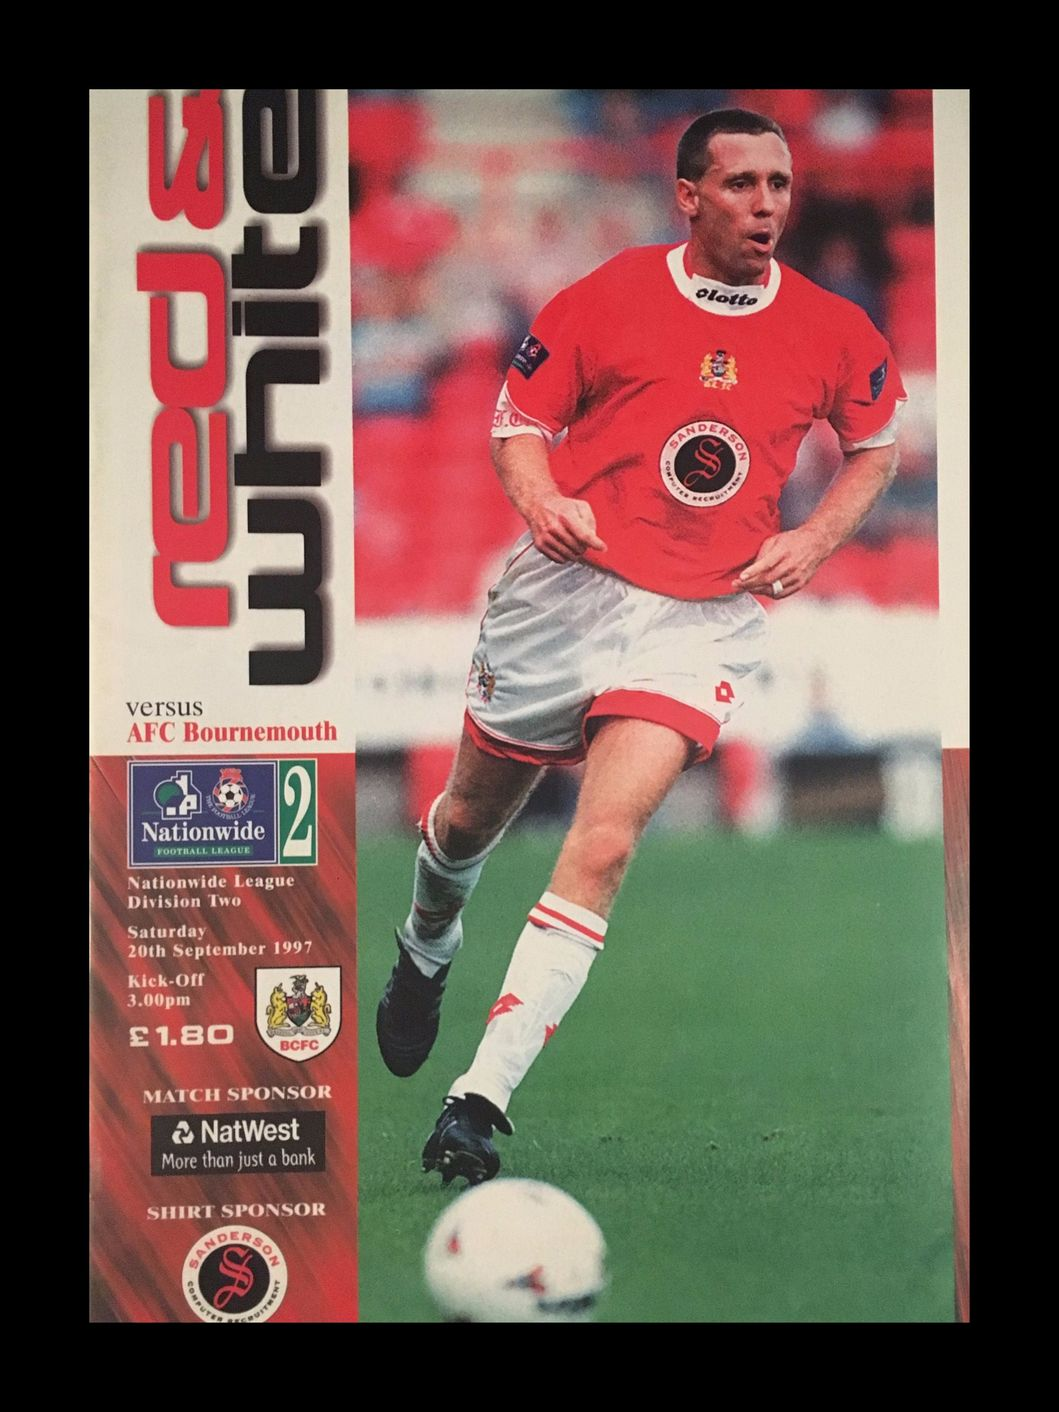 Bristol City v AFC Bournemouth 20-09-1997 Programme